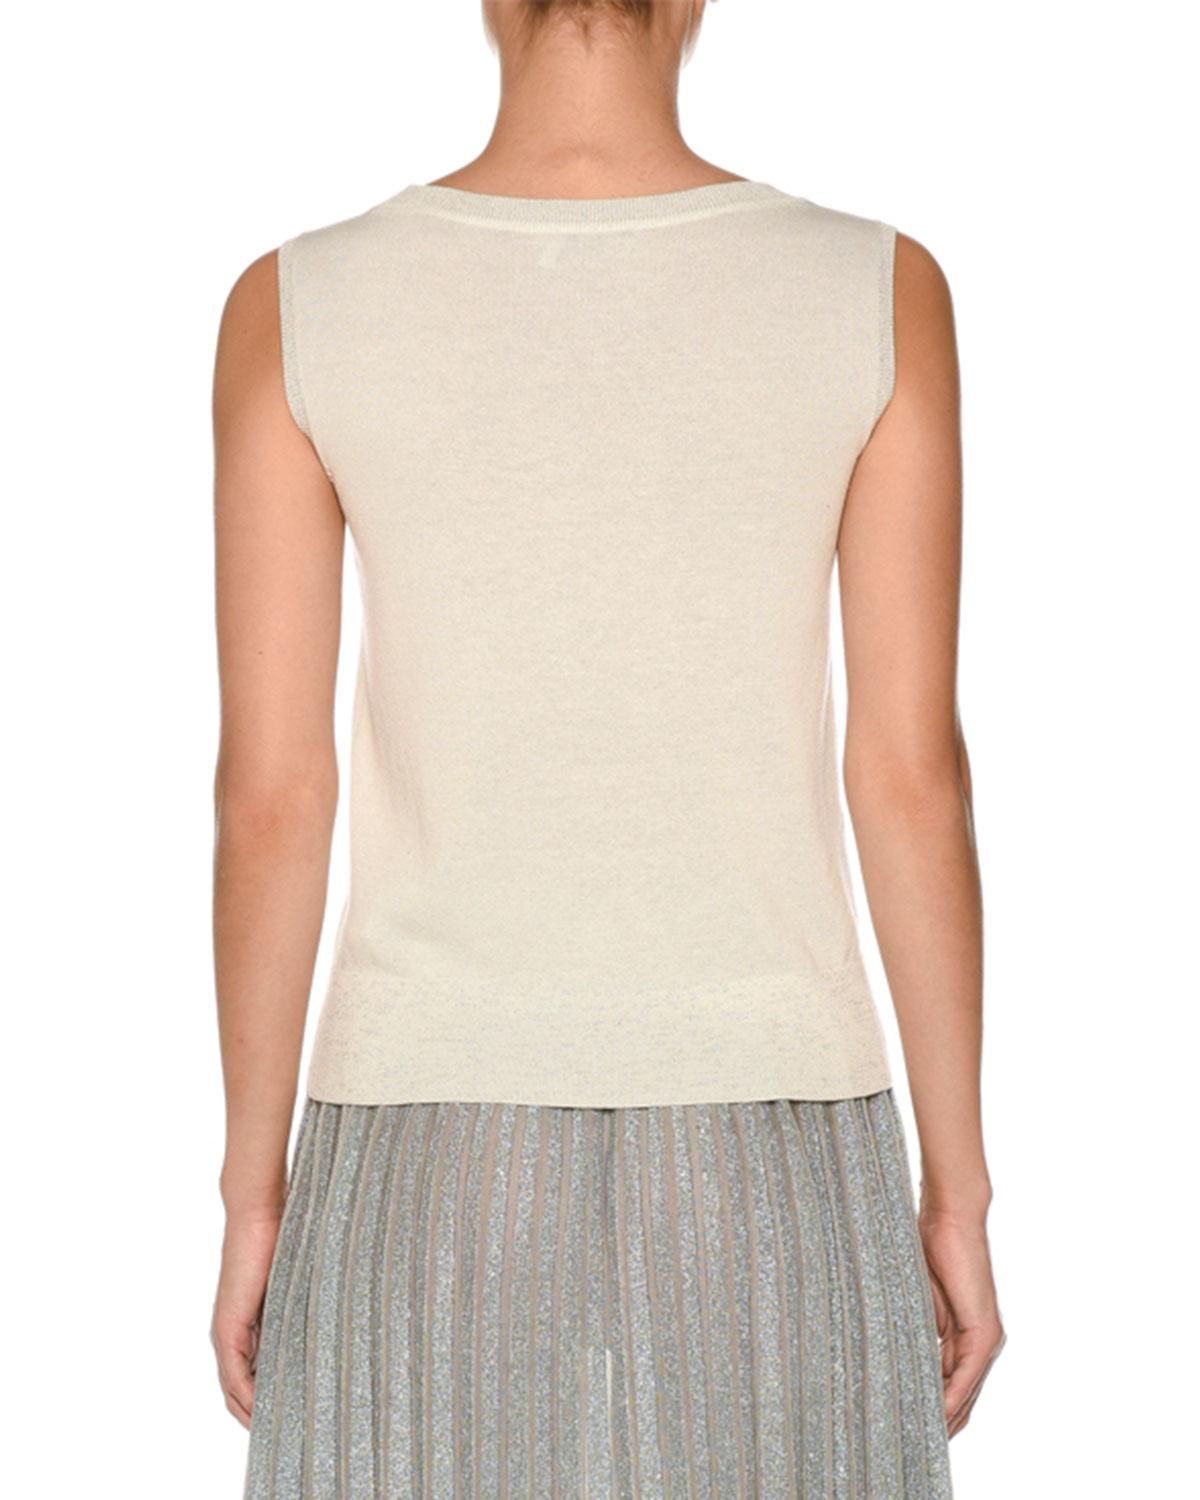 bafd216993359d Lyst - Agnona Sleeveless Crepe Cotton Top in White